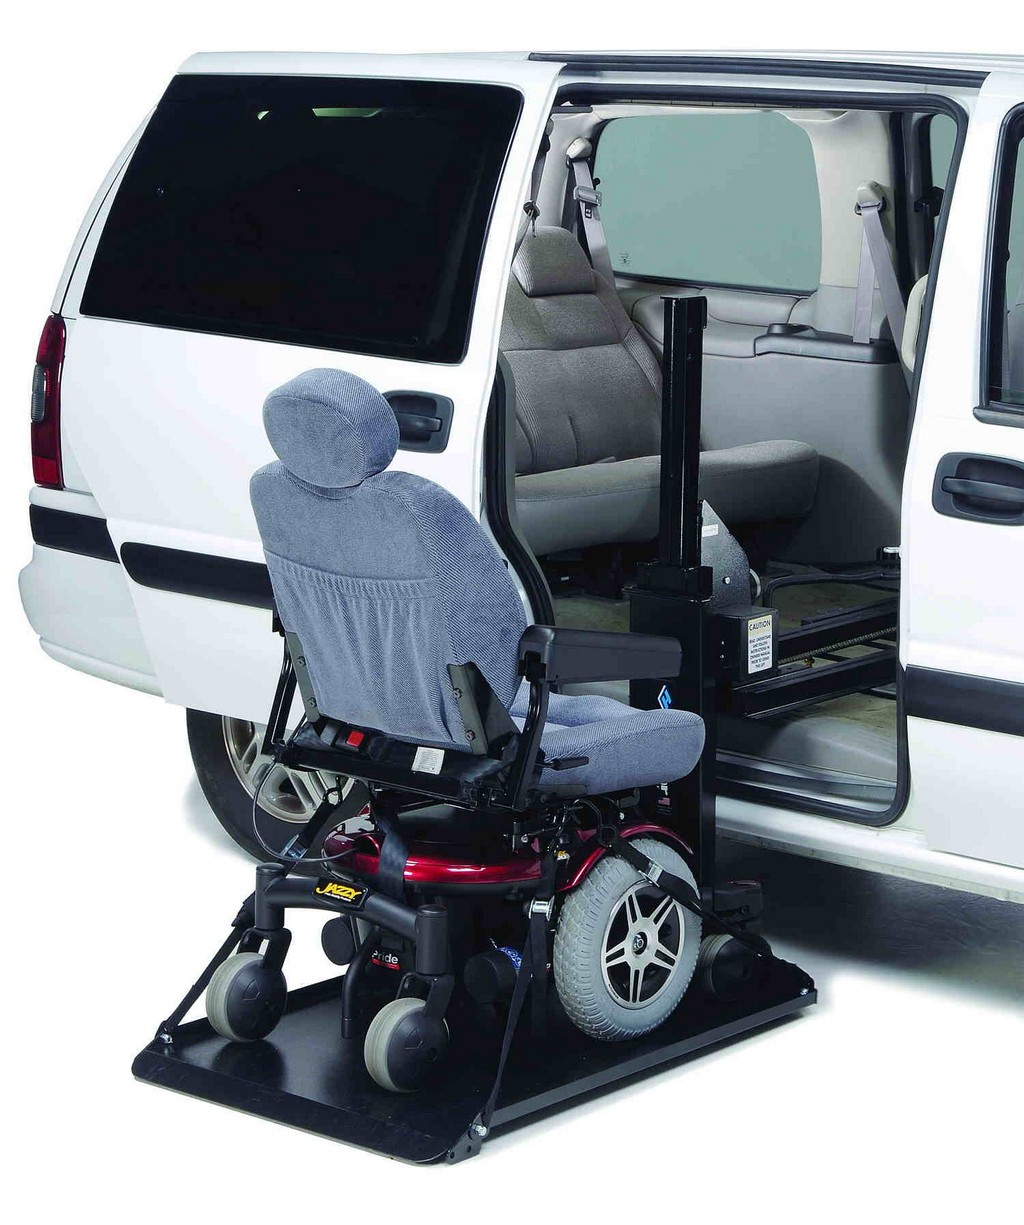 wheelchair lifts mt ephraim nj, rv wheelchair lifts, wheelchair lift systems, jazzy wheel chair lift